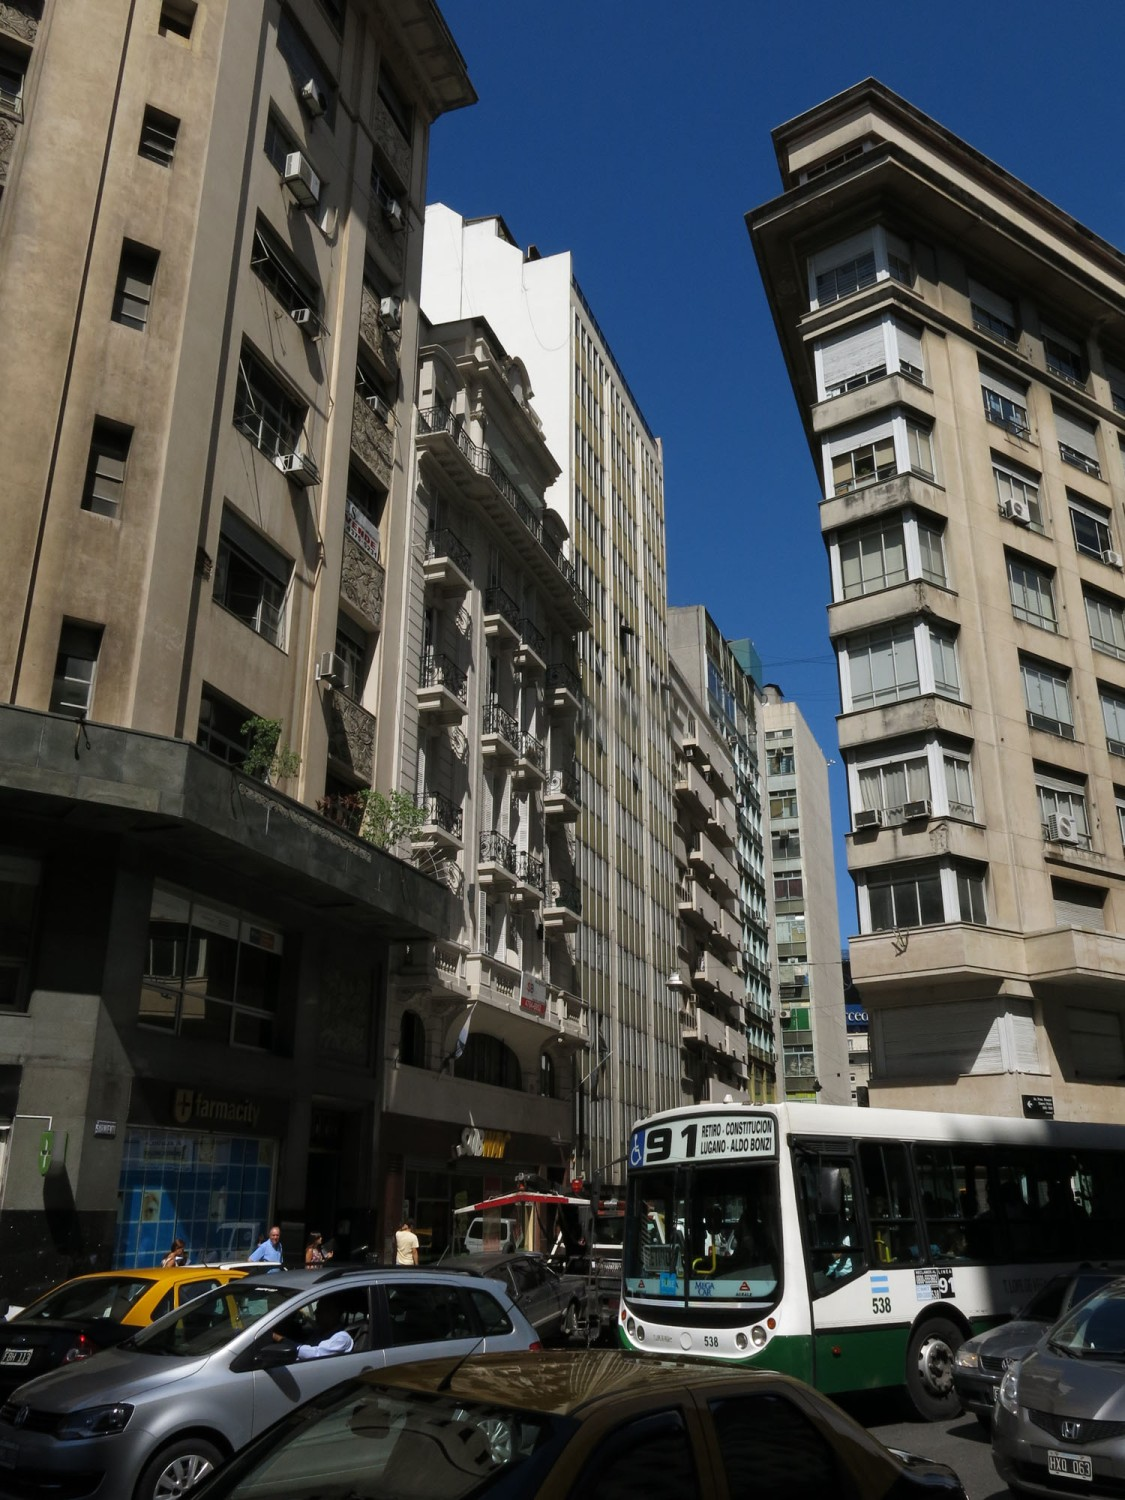 Argentina-Buenos-Aires-Street-Scenes-Buildings